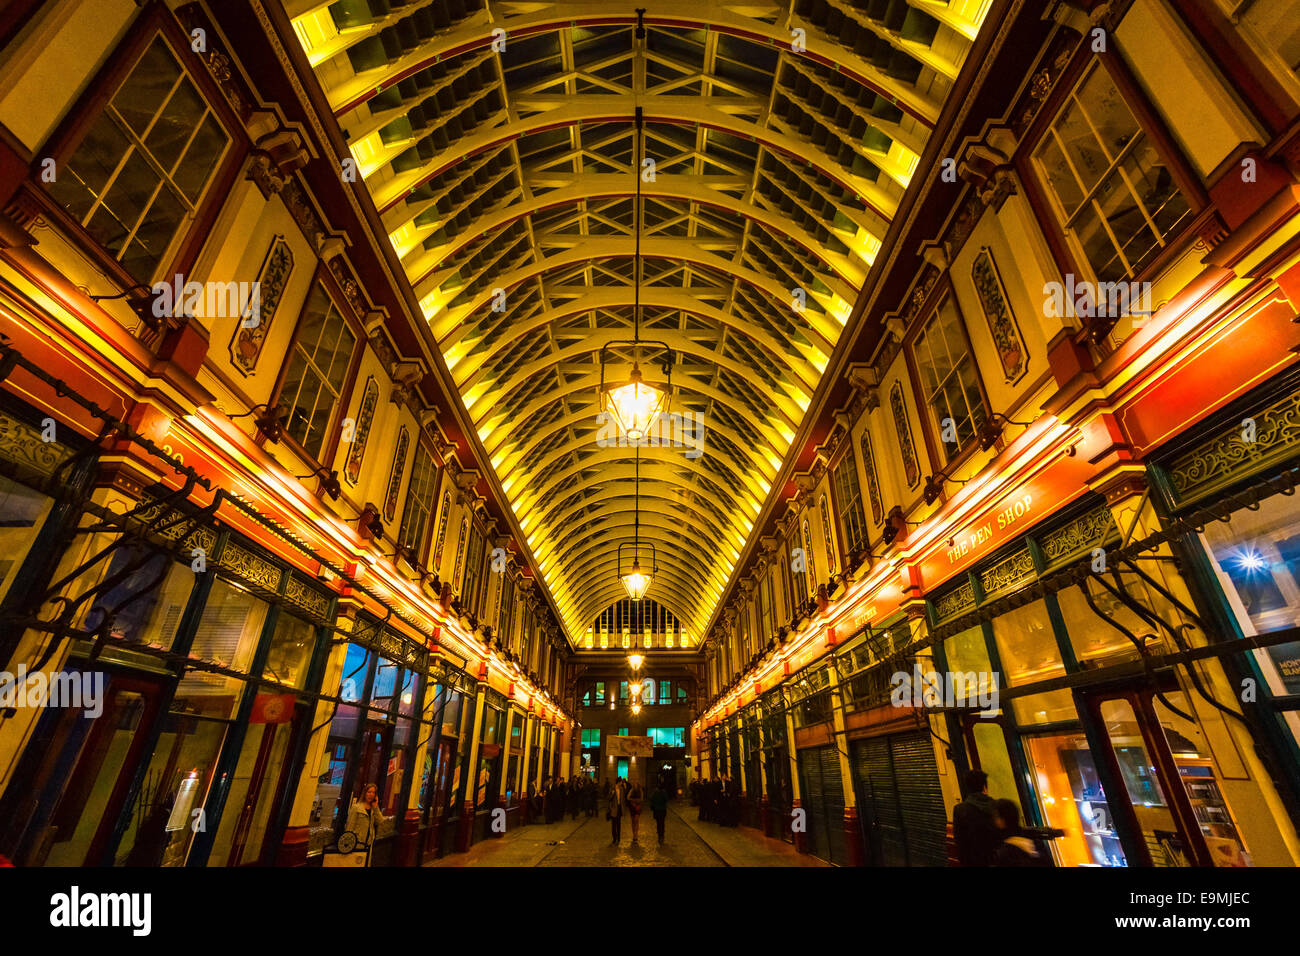 LONDON - MARCH 19: Leadenhall Market is a covered market in London ,It is one of the oldest marketsof the city, - Stock Image